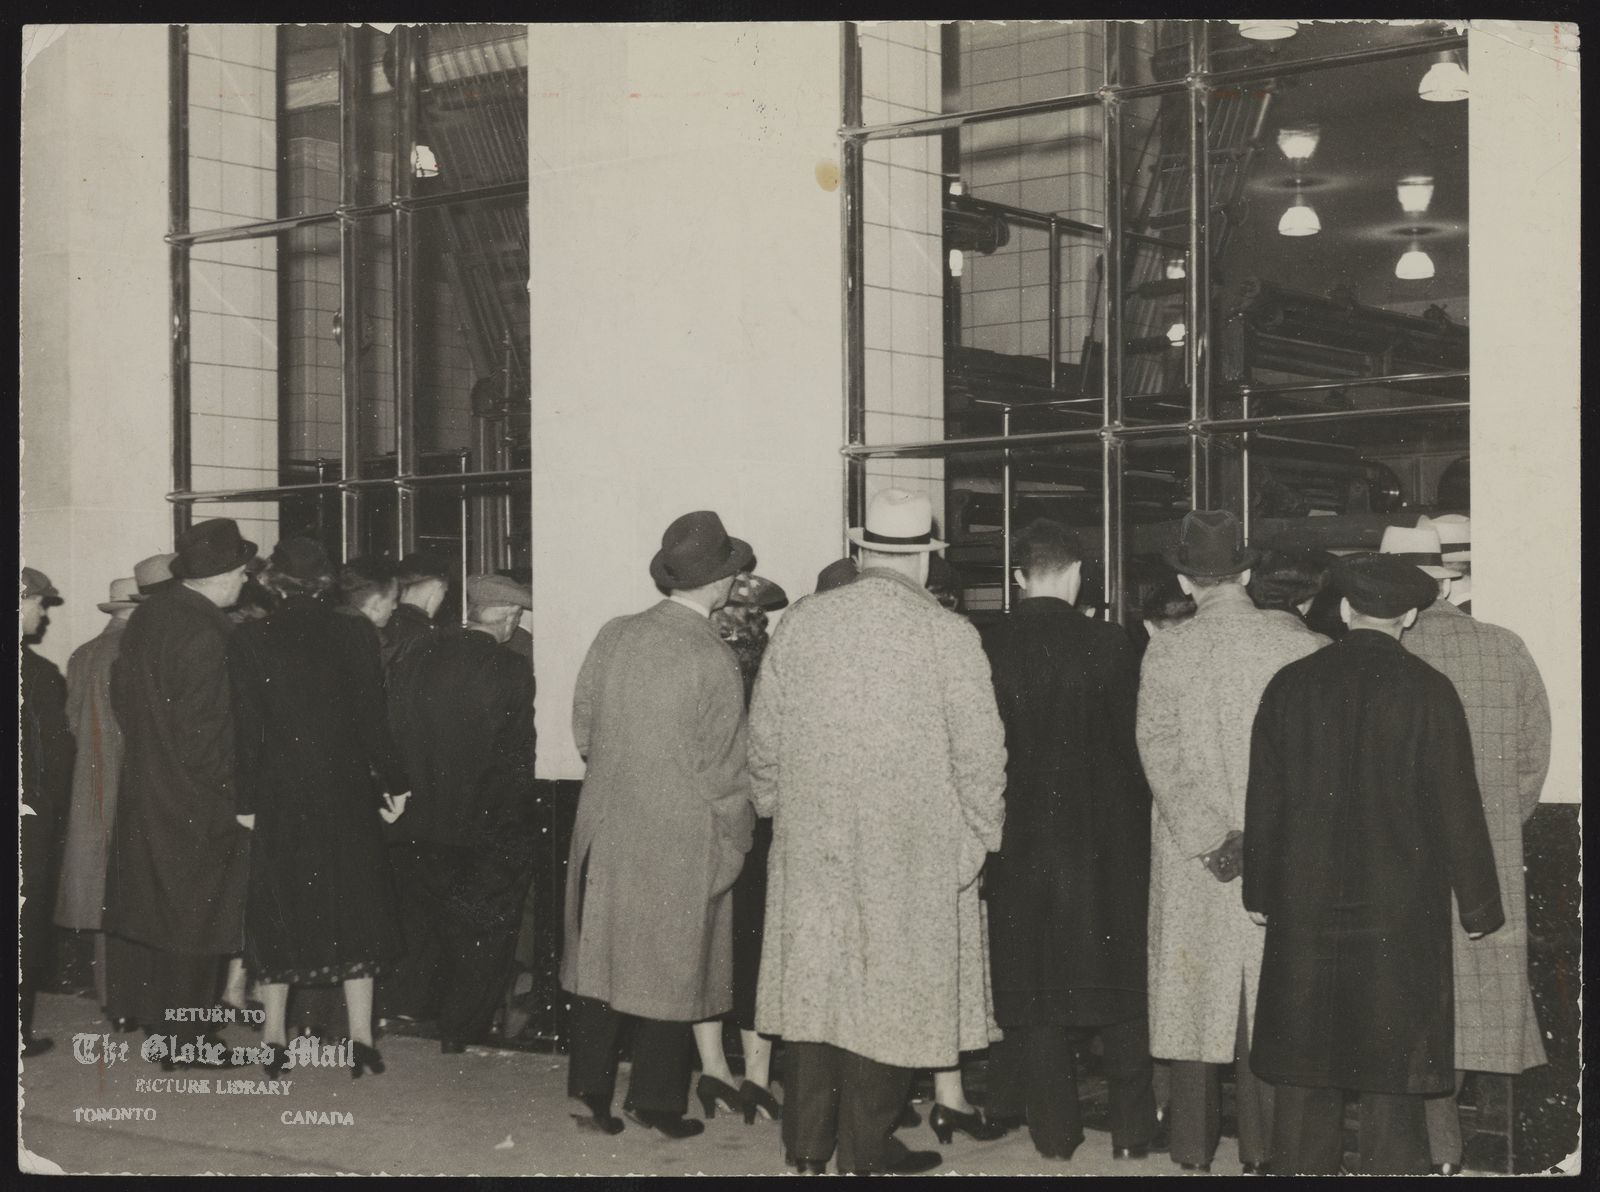 The notes transcribed from the back of this photograph are as follows: TORONTO GLOBE AND MAIL HISTORICAL-MISCELLANEOUS [WILLIAM H. WRIGHT BUILDING OPENS -- People on Yonge Street in Toronto looking through windows at Globe and Mail's new presses in the William H. Wright building, April 25, 1938. Photo by John Boyd / The Globe and Mail. (Scanned from glass plate Negative #51073 / 38115-07). ]